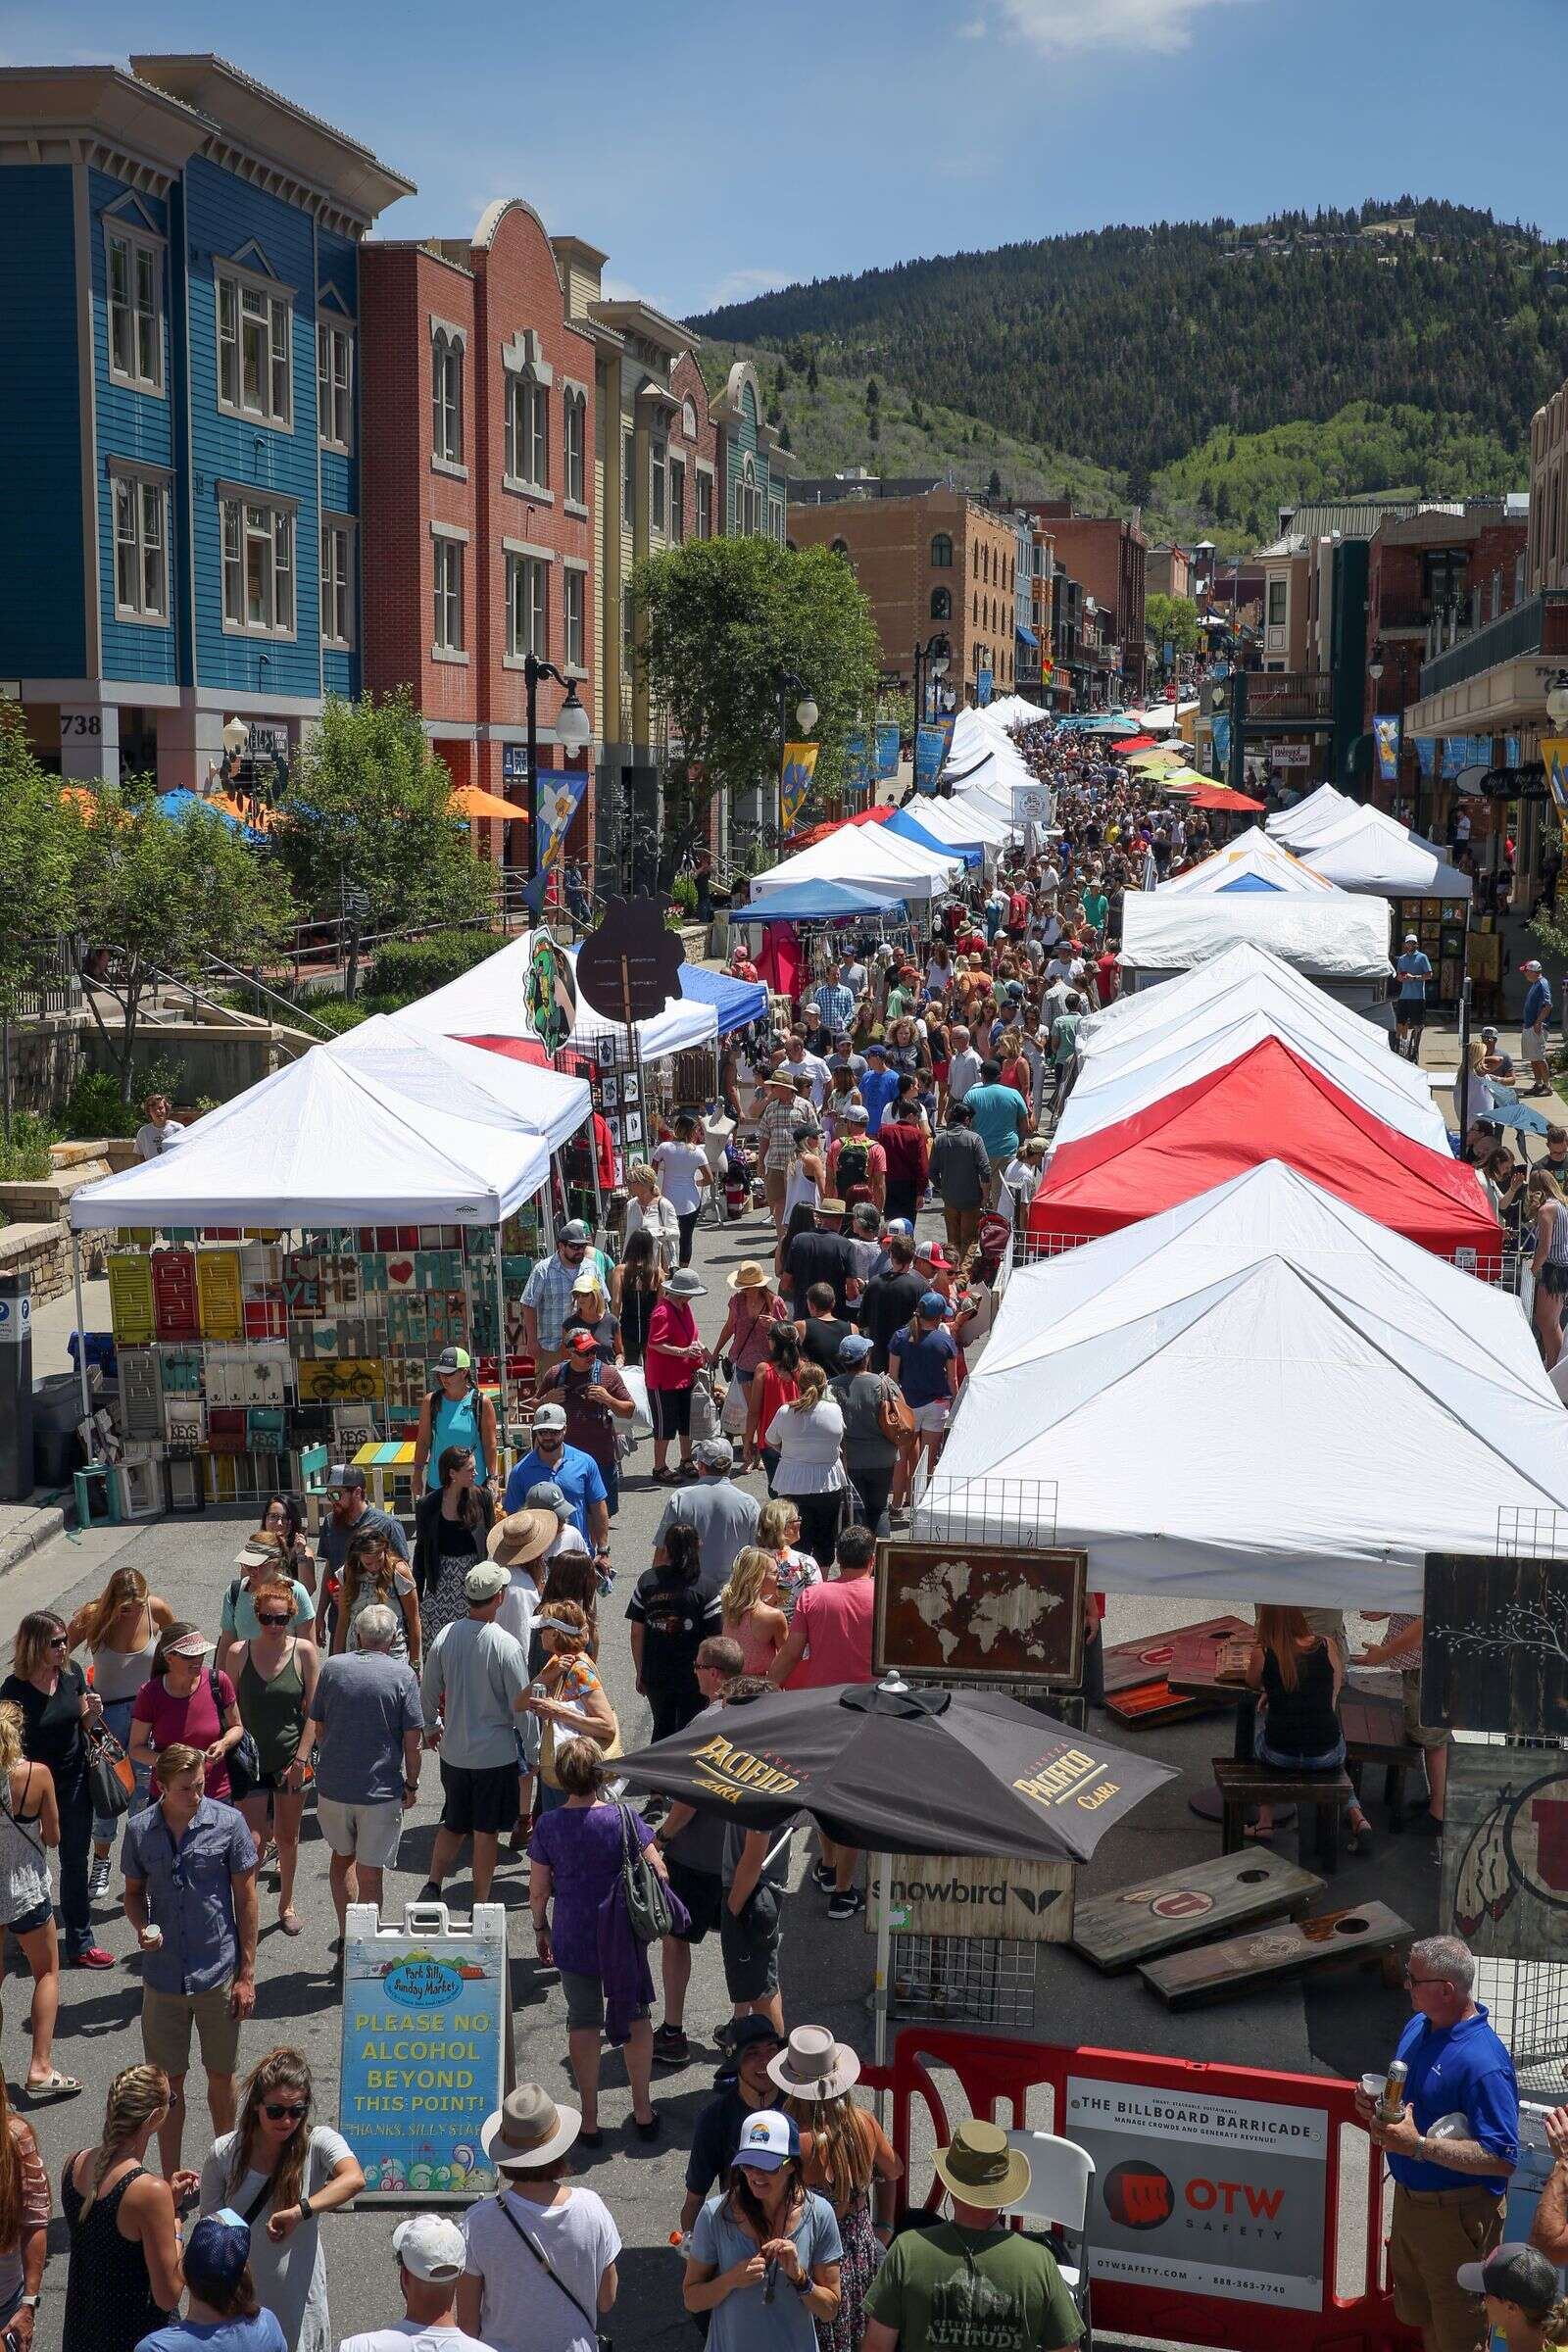 Silly Market plans a return to Park City after last season's cancellation